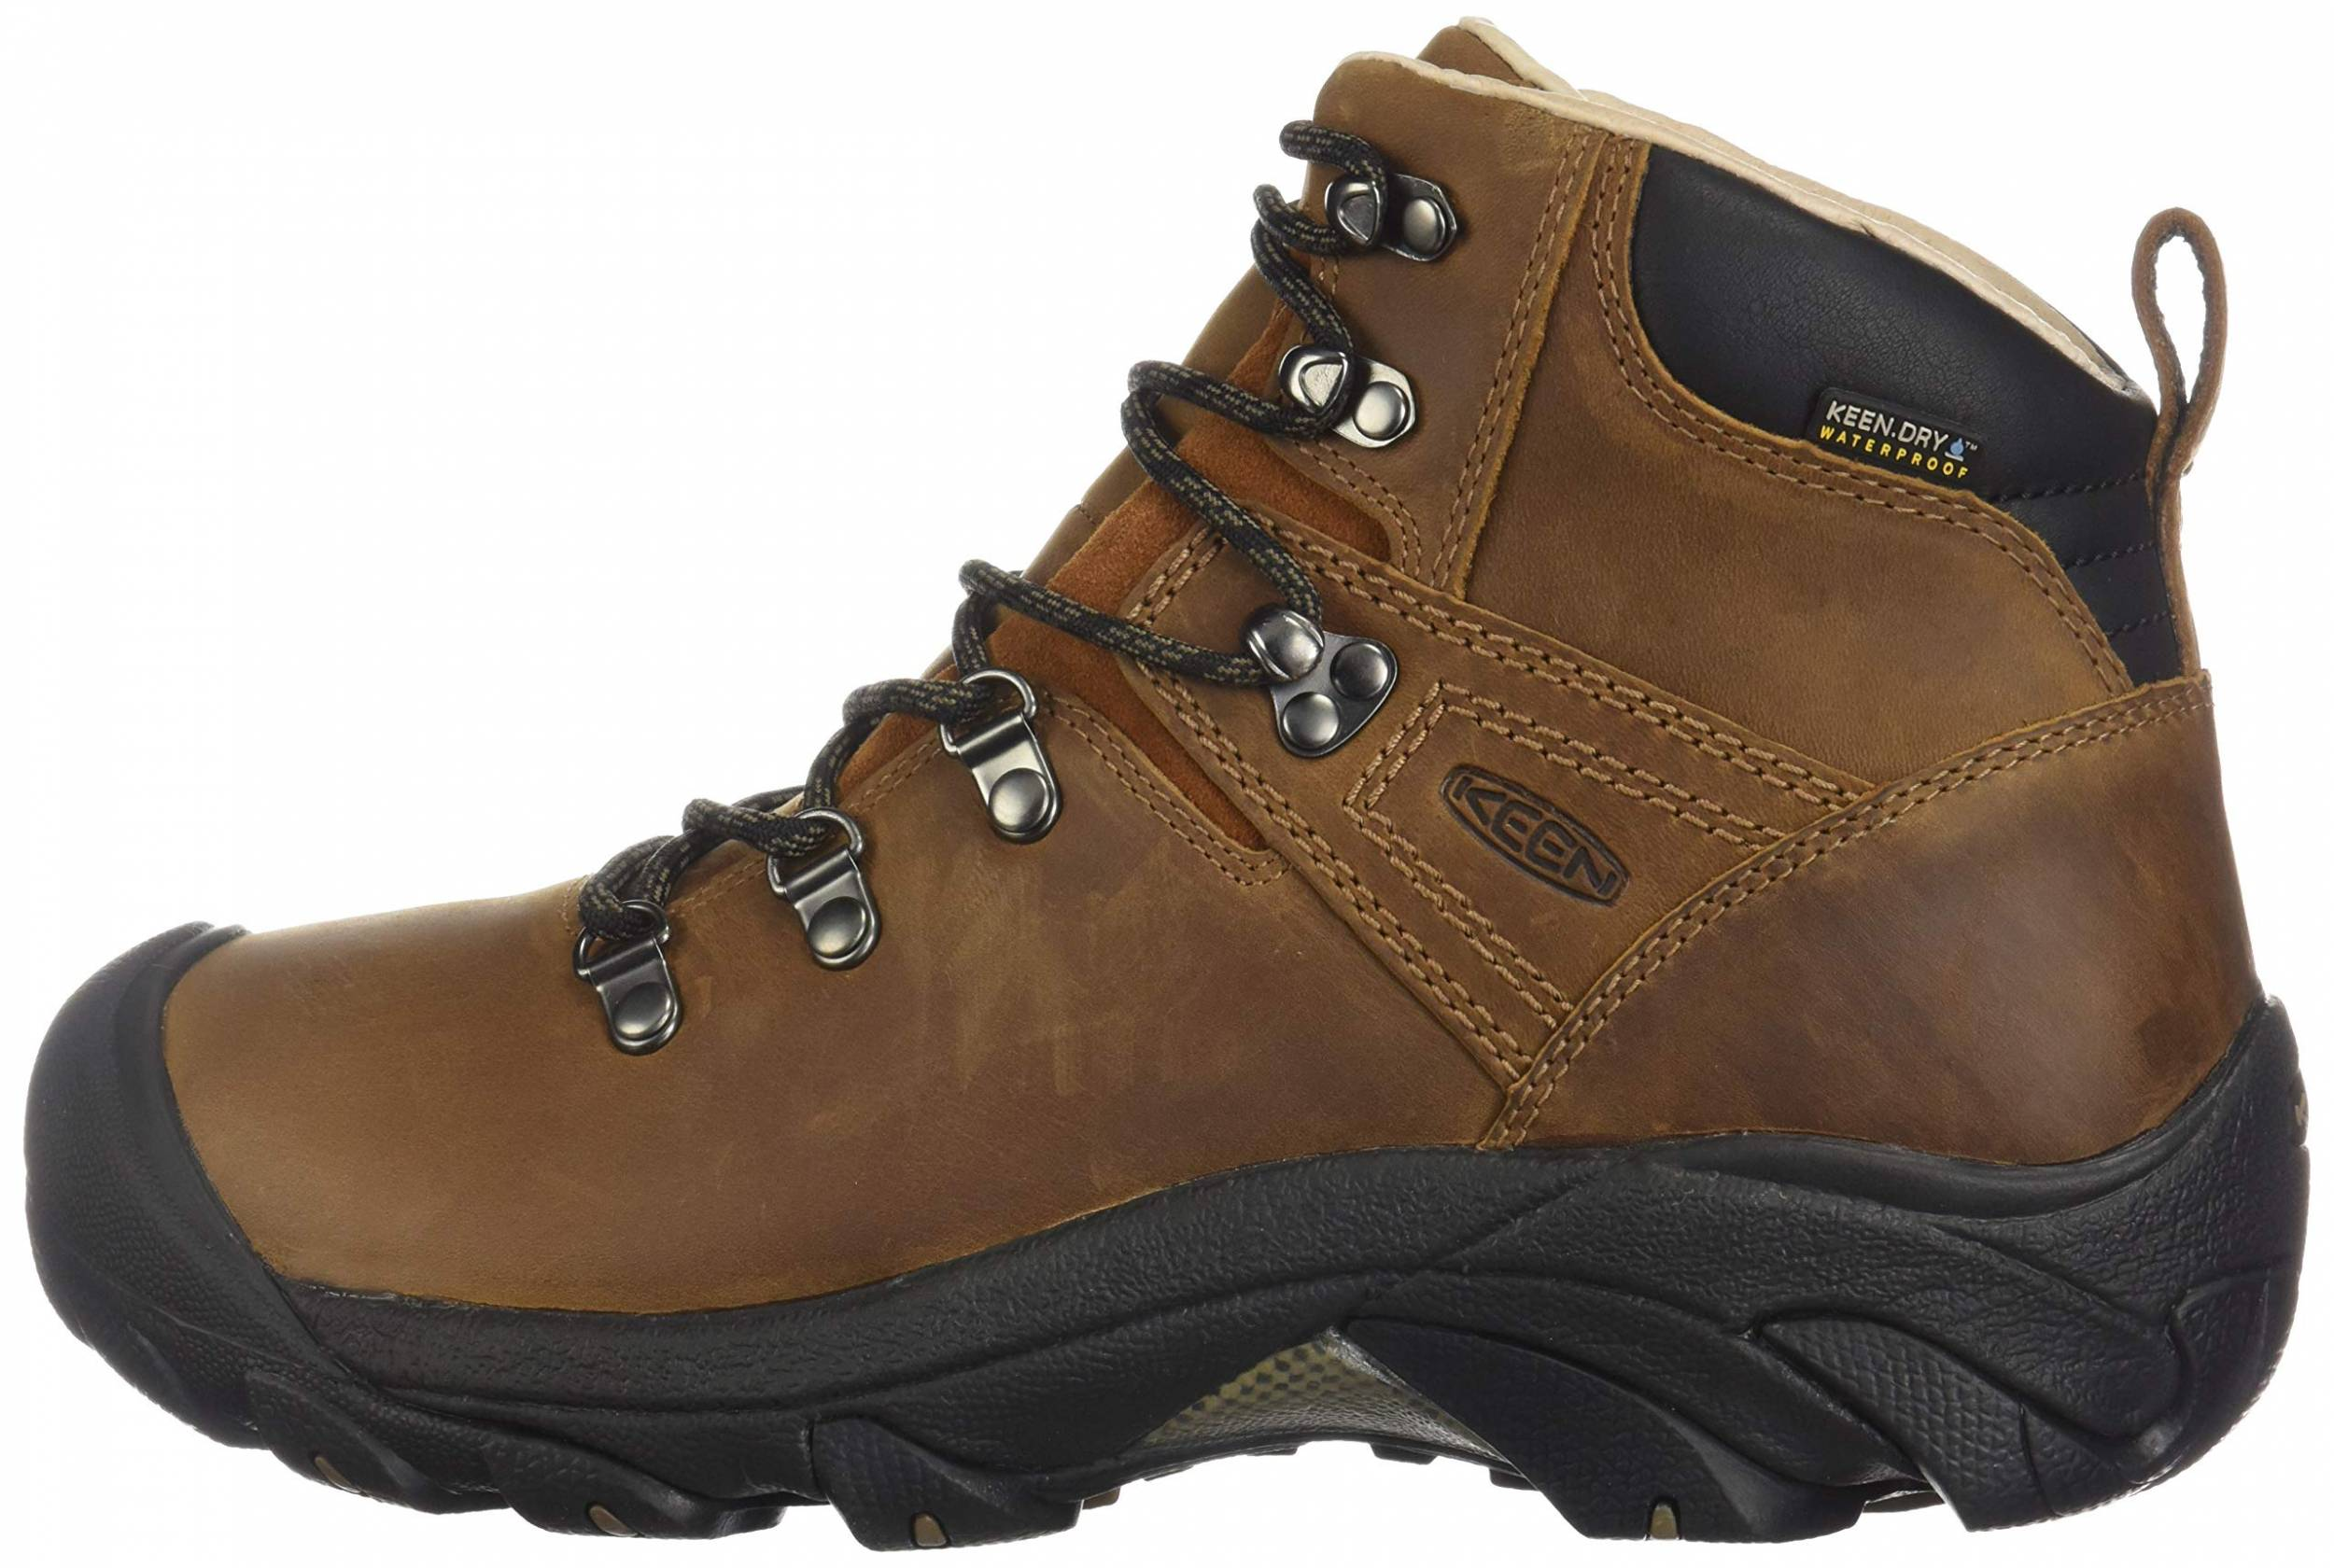 Only $120 + Review of KEEN Pyrenees